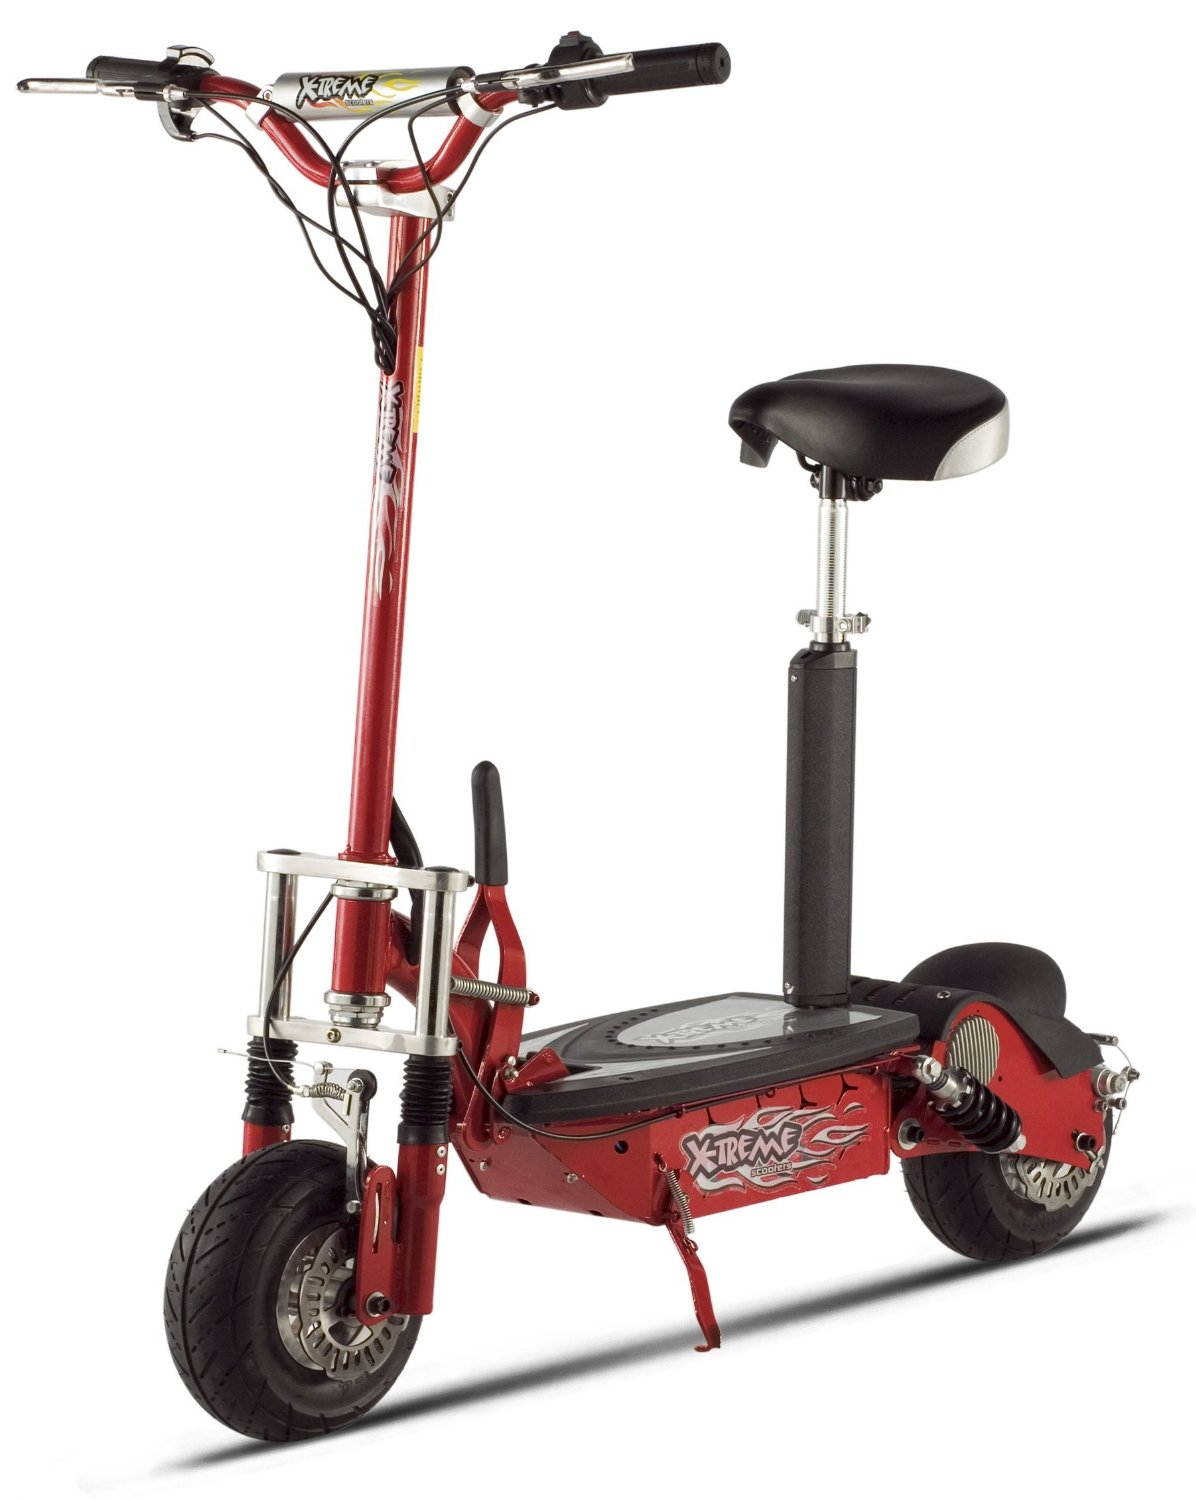 X Treme Scooters X 600 Electric Kids Scooters